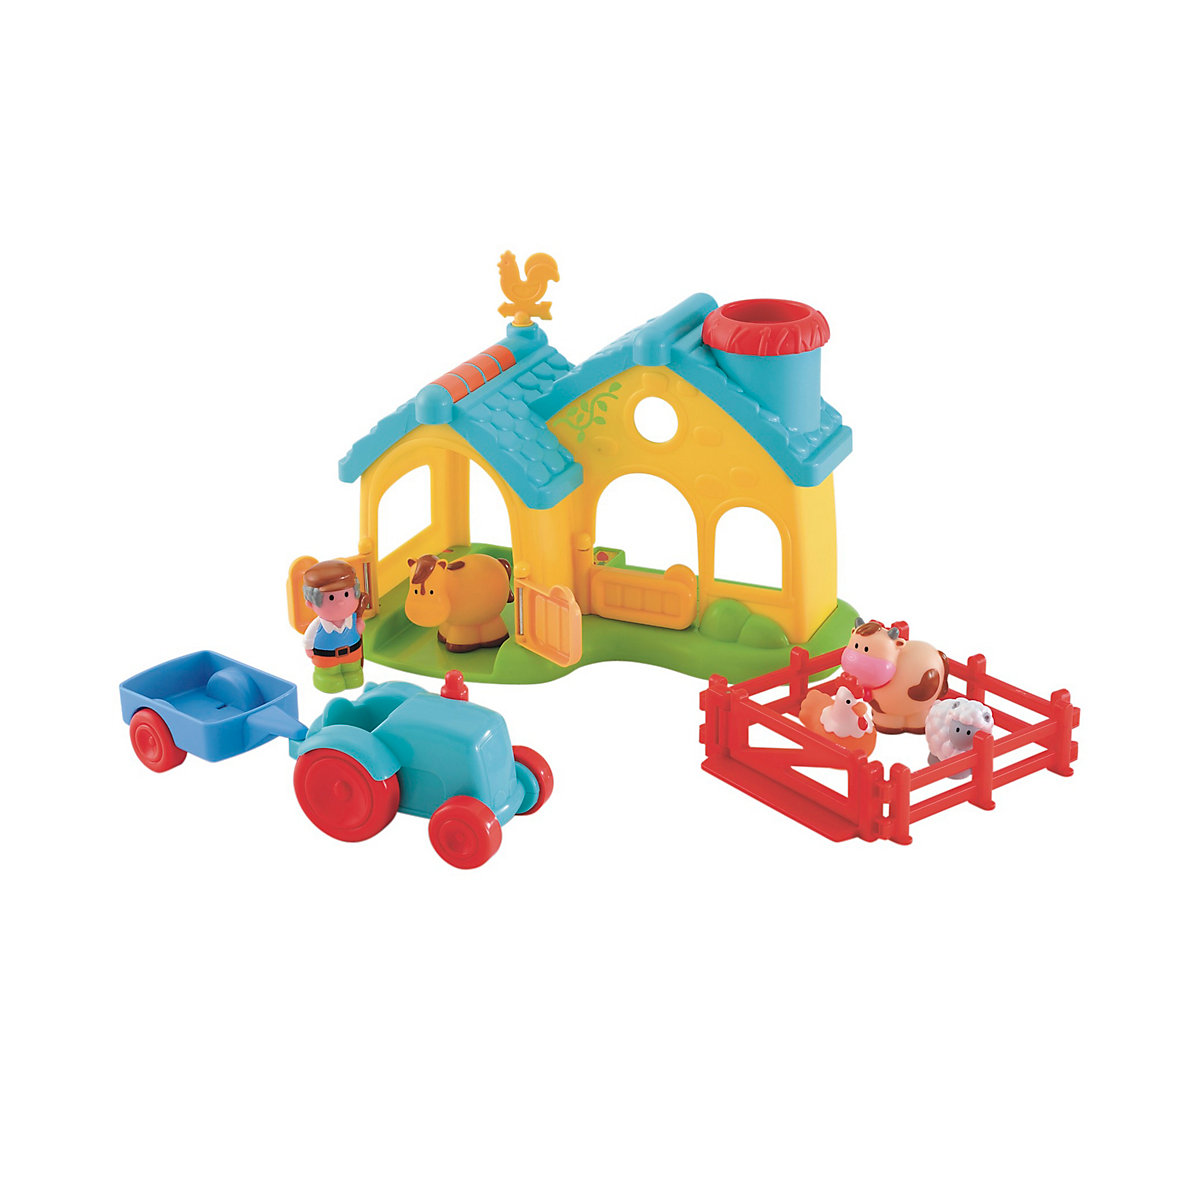 New HappyLand Boys and Girls Farm Playset Toy From 18 months - Early Learning Centre Gifts